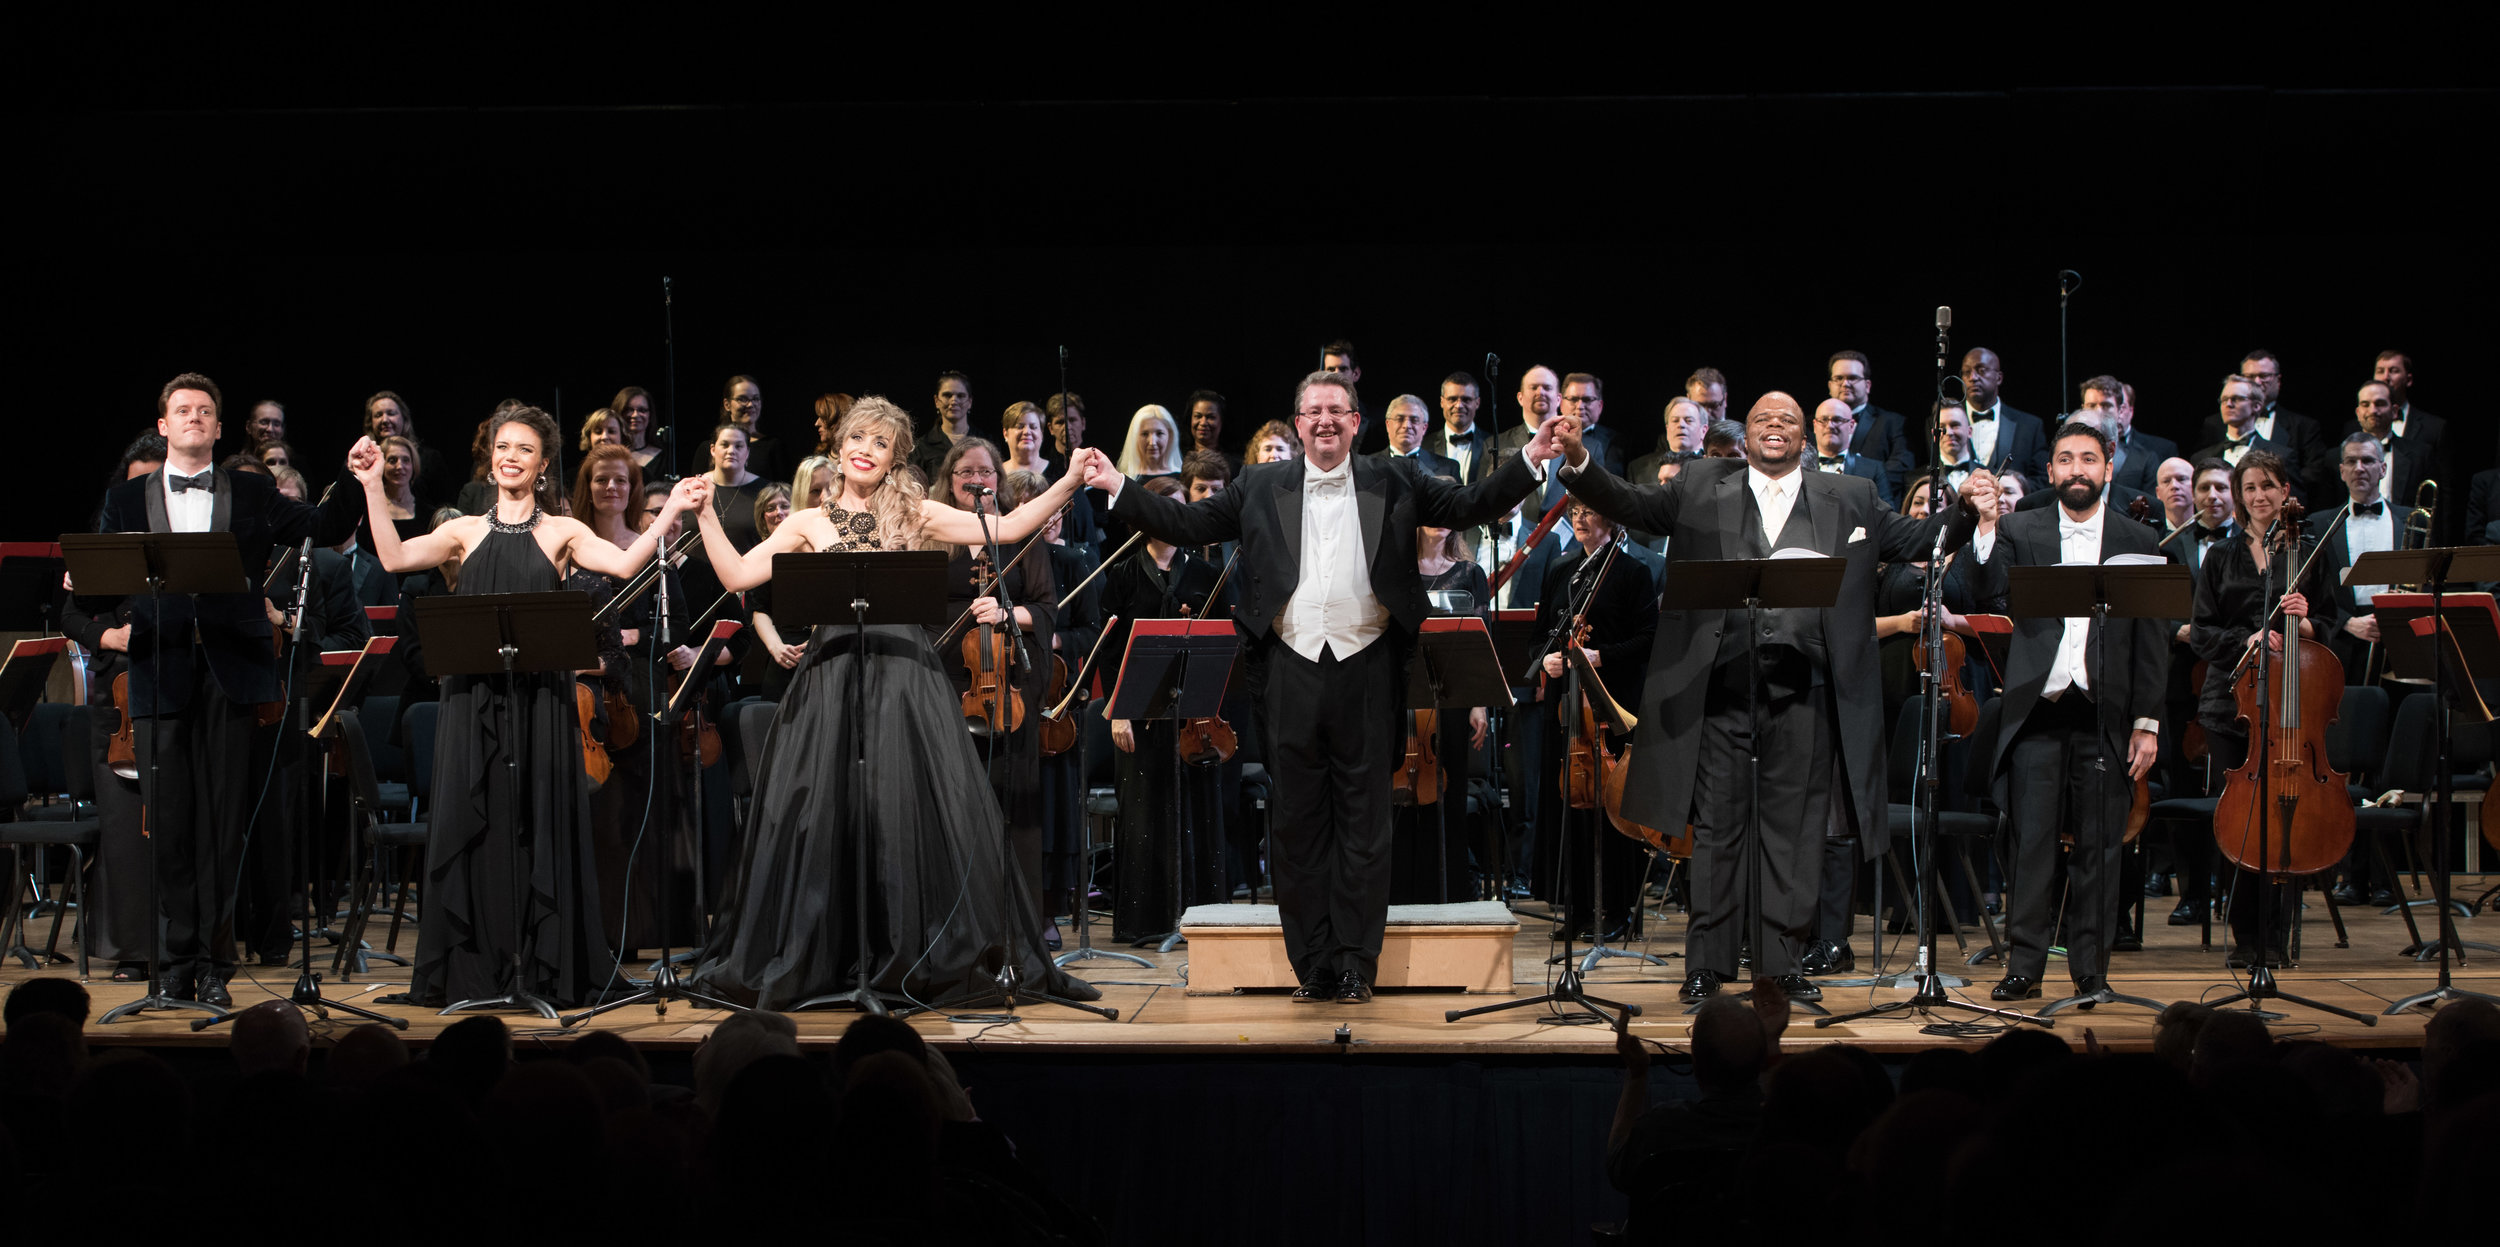 Norman Reinhardt, Ginger Costa-Jackson, Marina Costa-Jackson, Antony Walker, Lester Lynch, Efrain Solis, and the Washington Concert Orchestra. Photo by Don Lassell; courtesy of Washington Concert Opera.